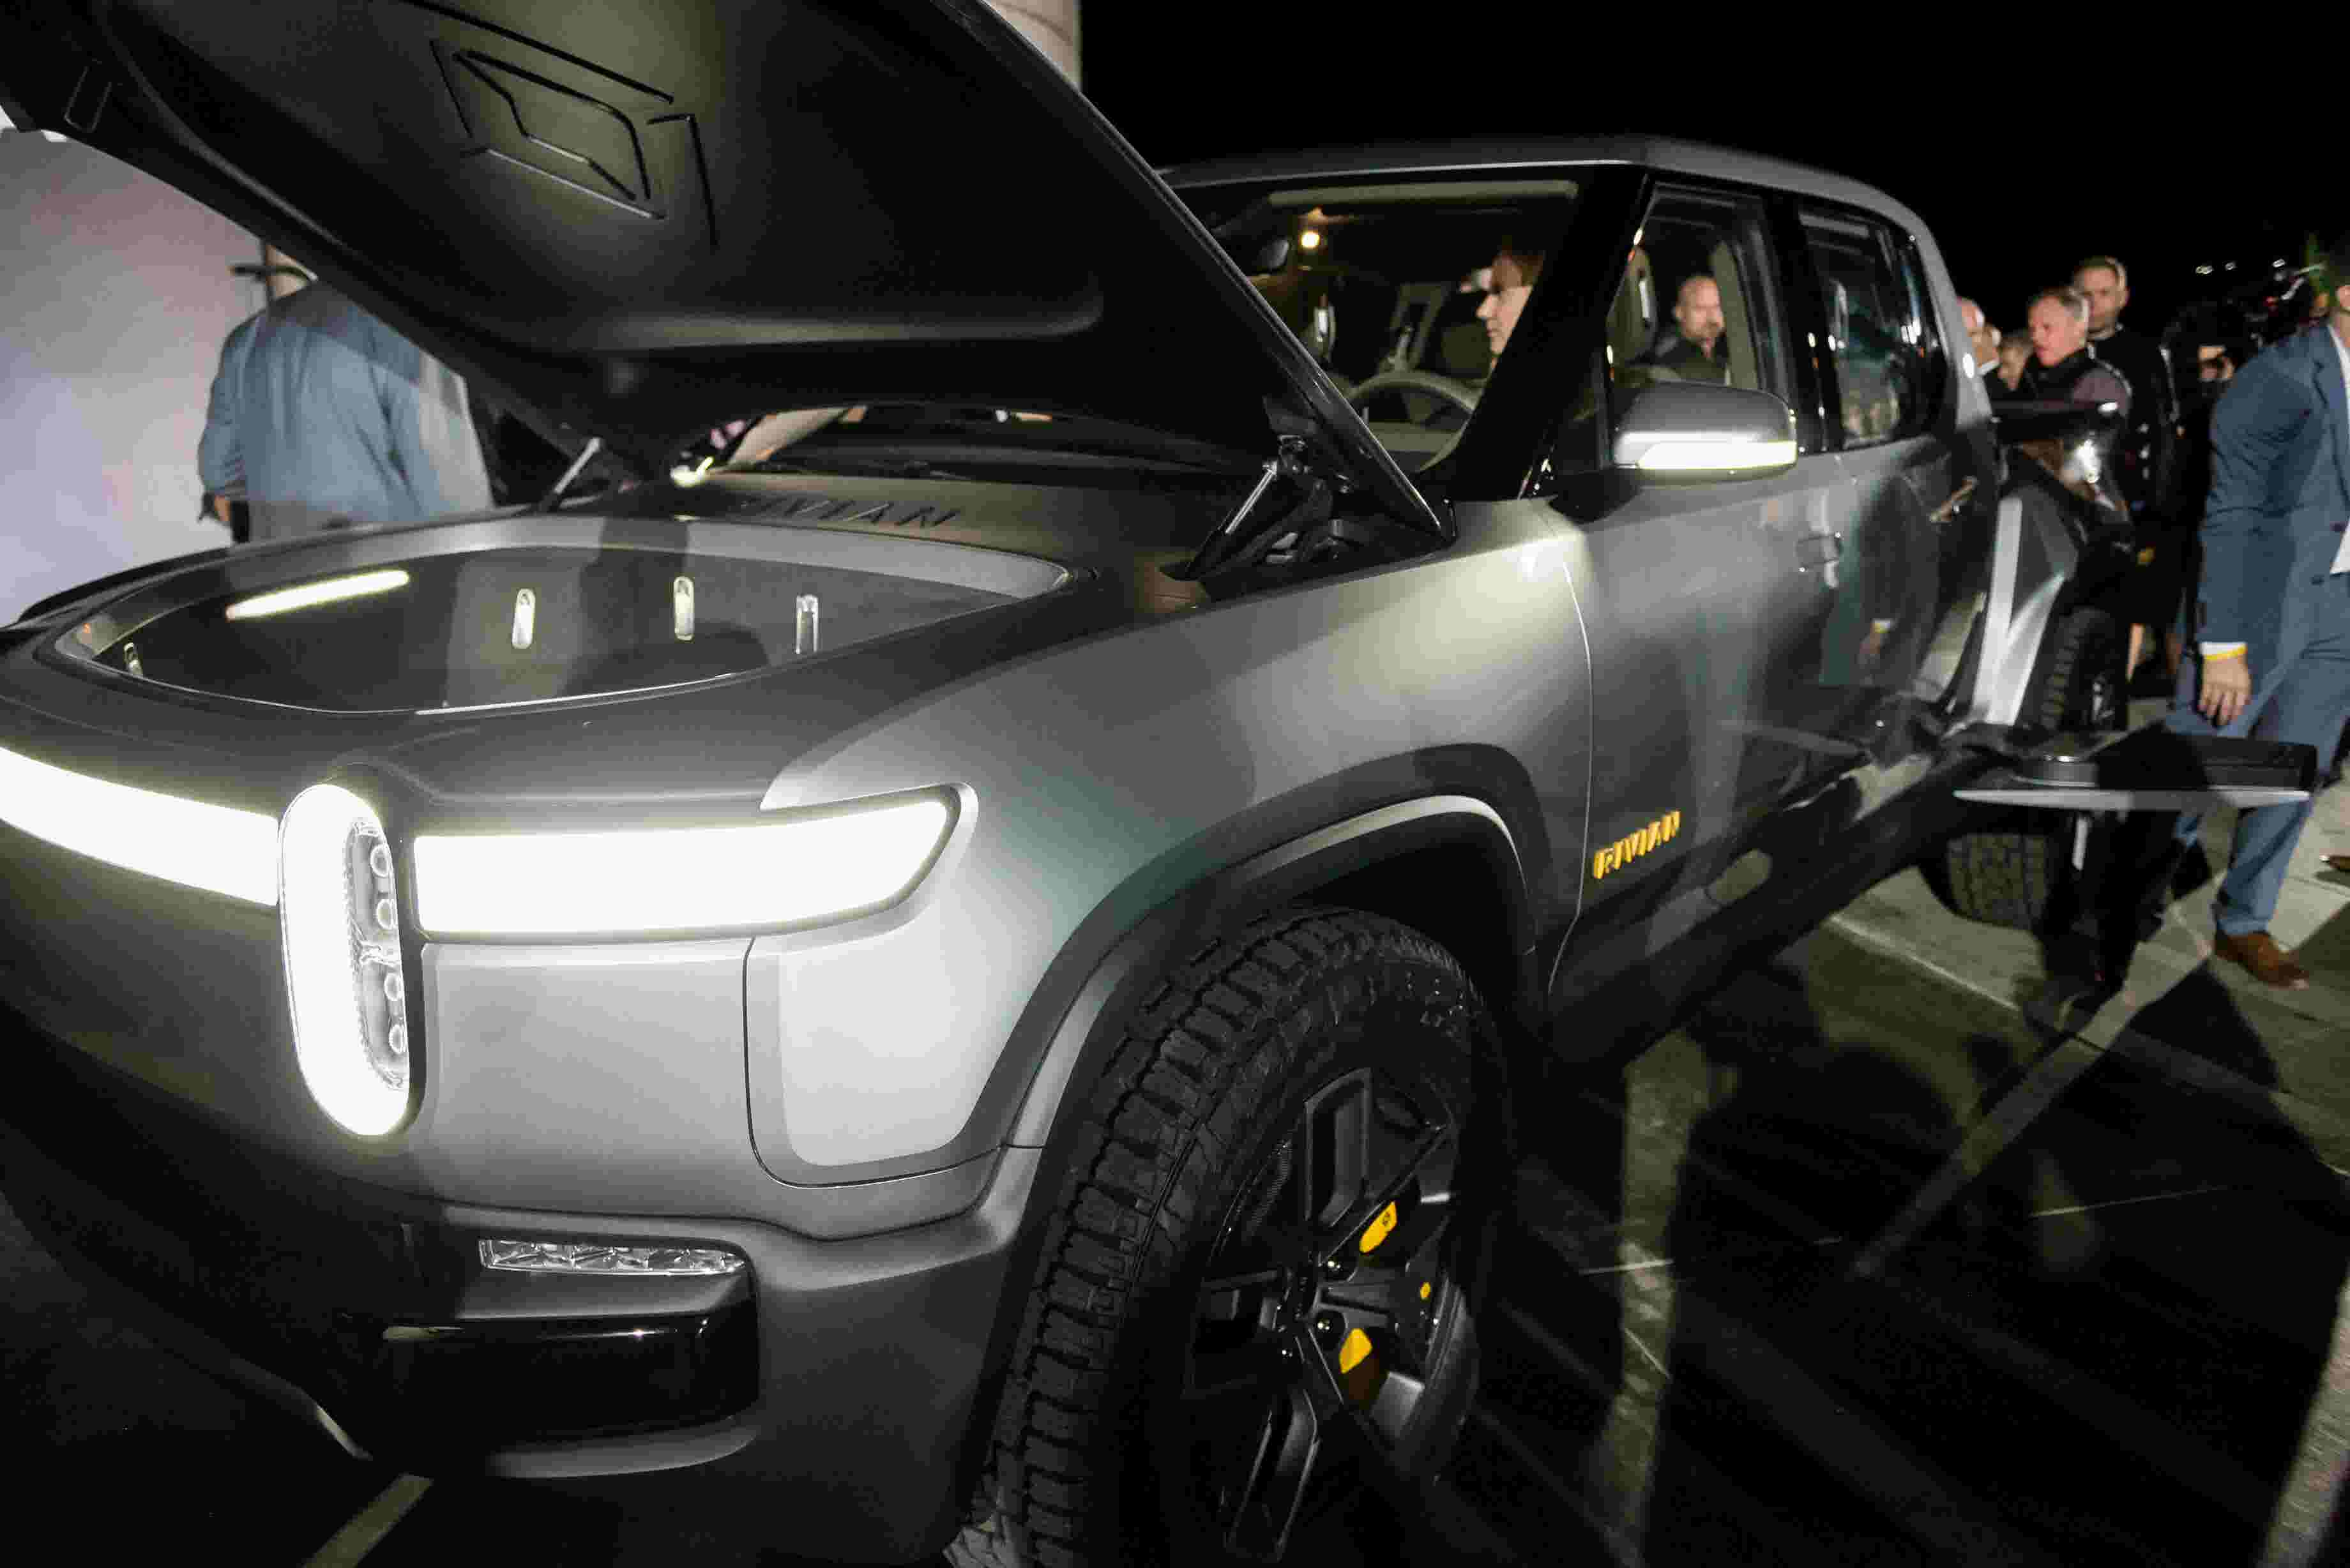 Amazon to lead $700M investment in Rivian electric vehicle startup